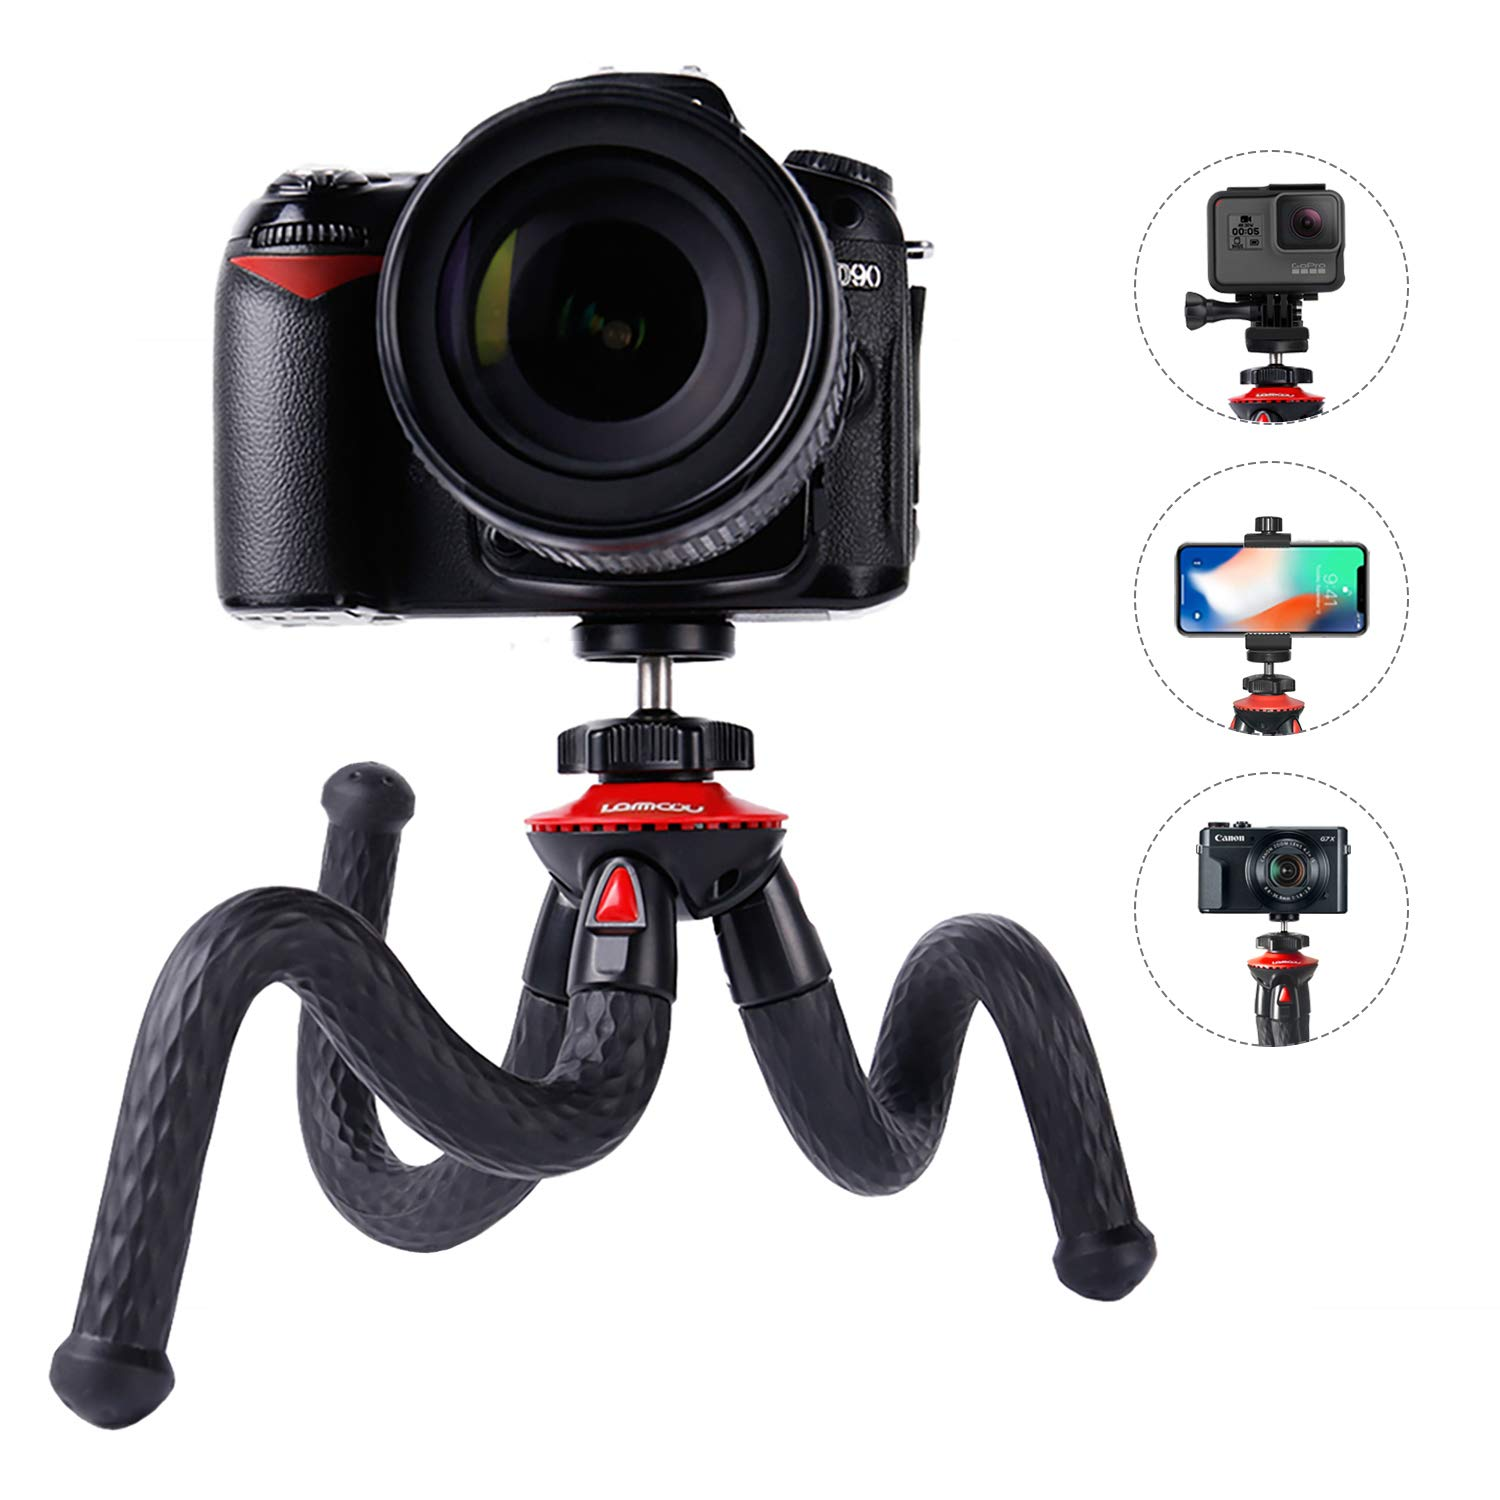 Flexible Camera Tripod Vlogging Bendable Travel Octopus Gorilla Portable Mini Tripods for DSLR Camera GoPro Smartphone Cell Phone Actioncam Webcam Camcorder Canon GX7 Nikon Sony Phone Xs Samsung Stand by Lammcou (Image #1)